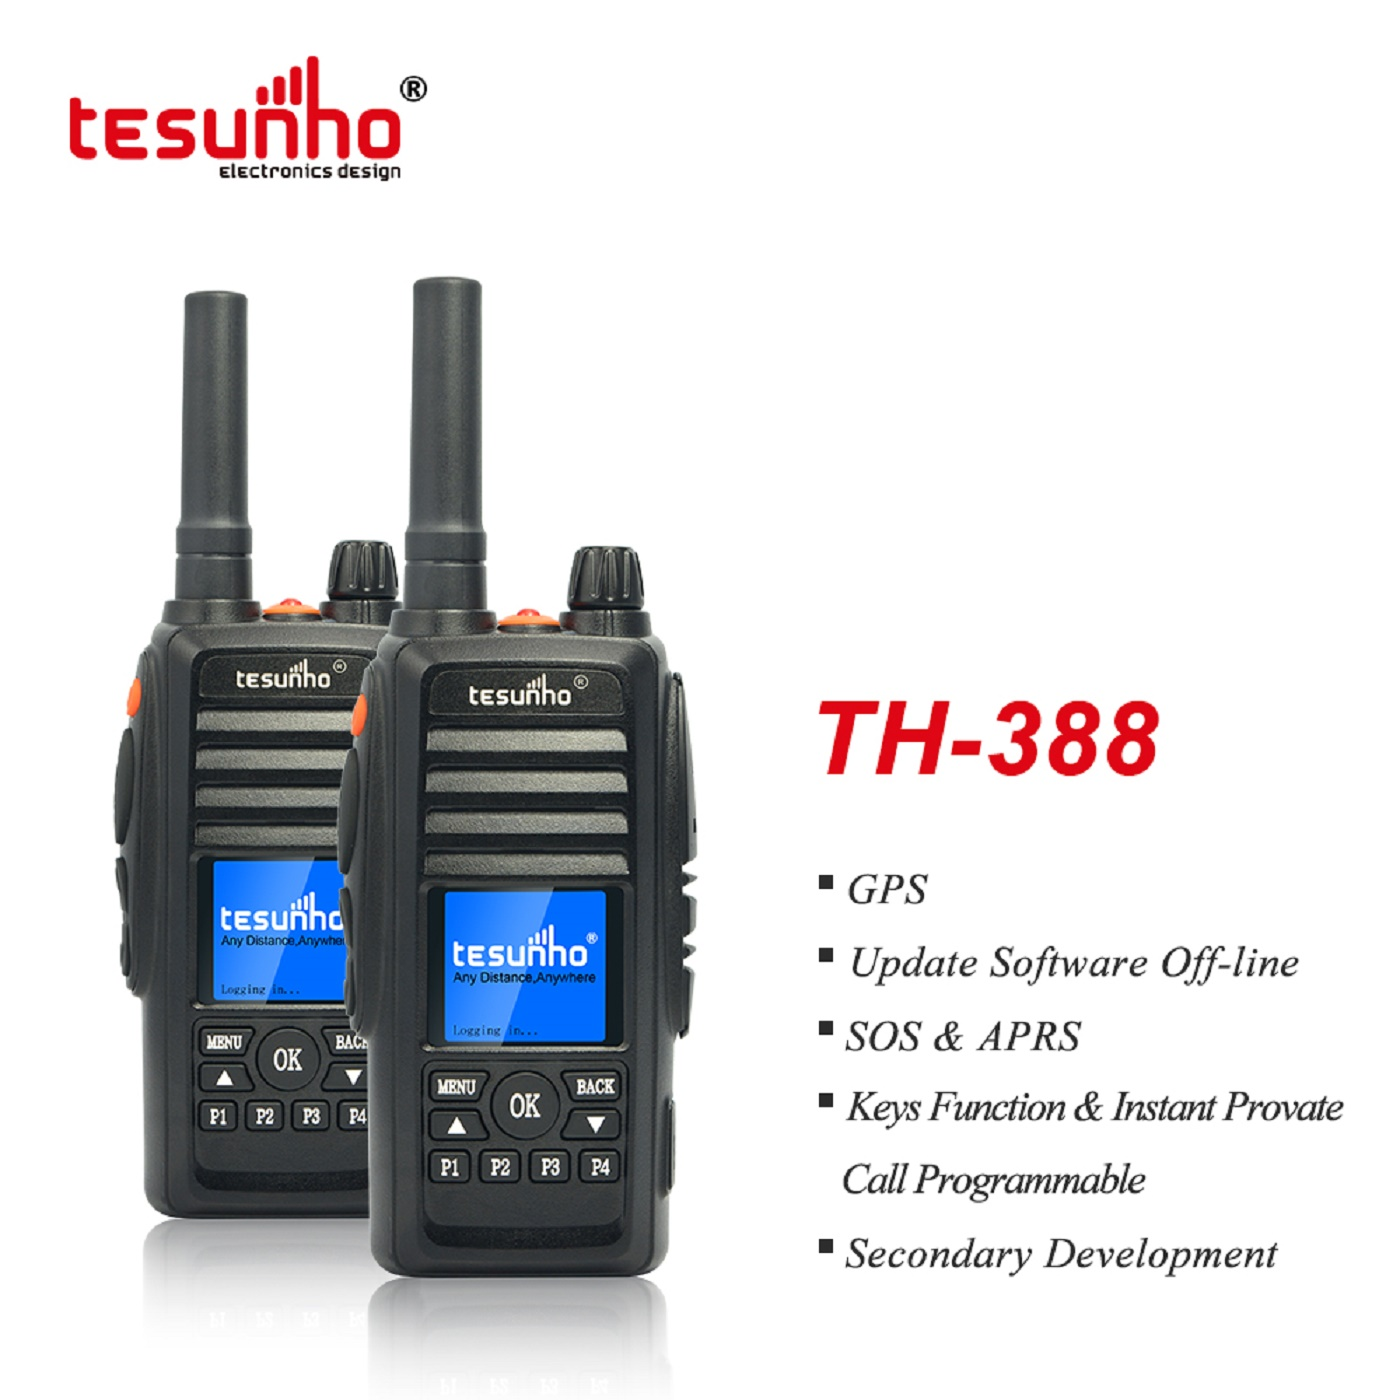 4G/3G/2G M network Walkie Talkie For Outdoor Events